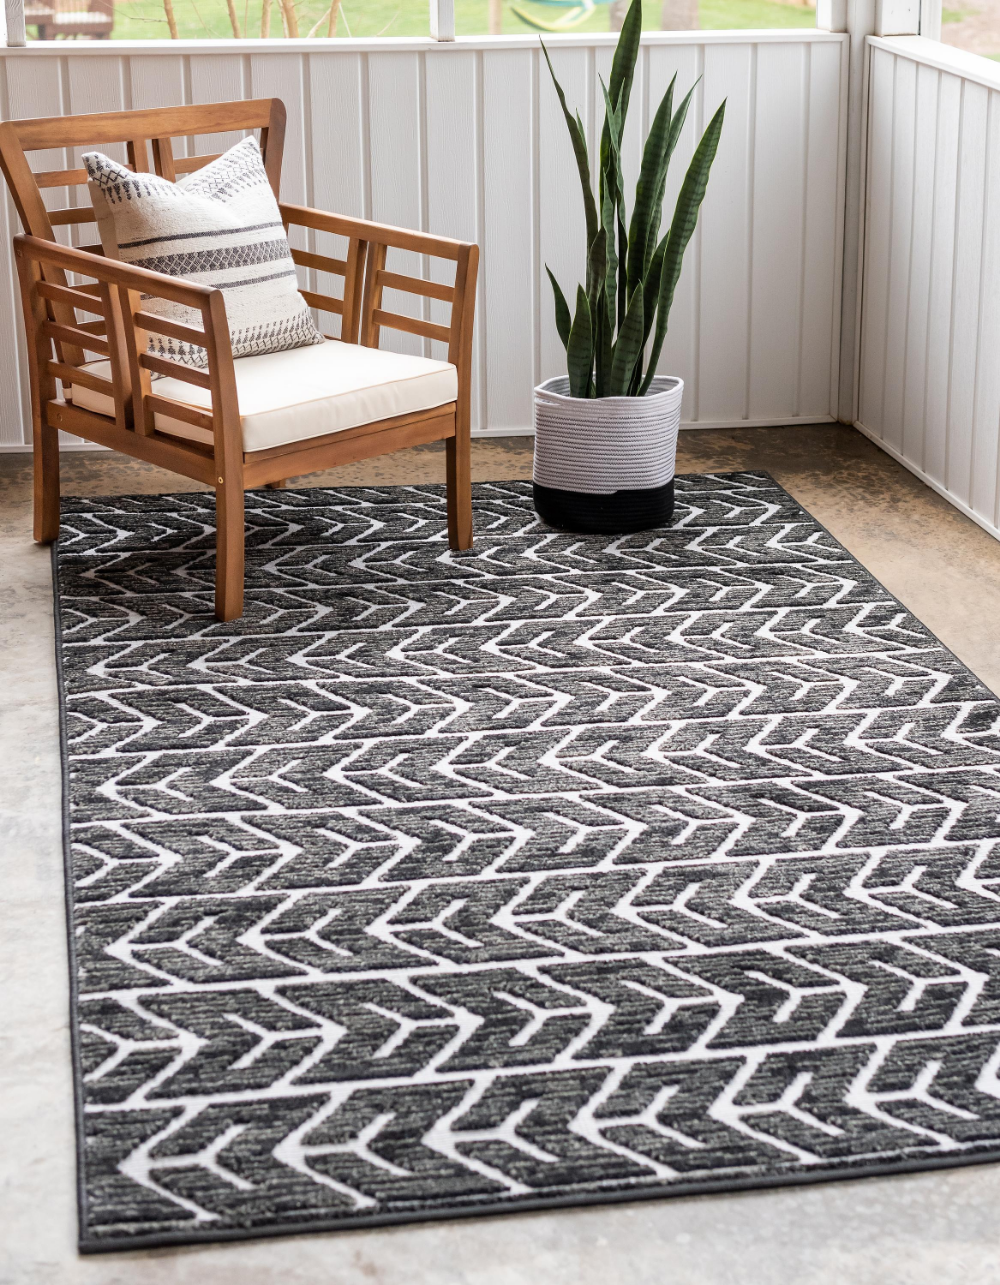 Black 8 X 10 Sabrina Soto Outdoor Rug Rugs Com Decoracion Gris Decoracion De Unas Gris